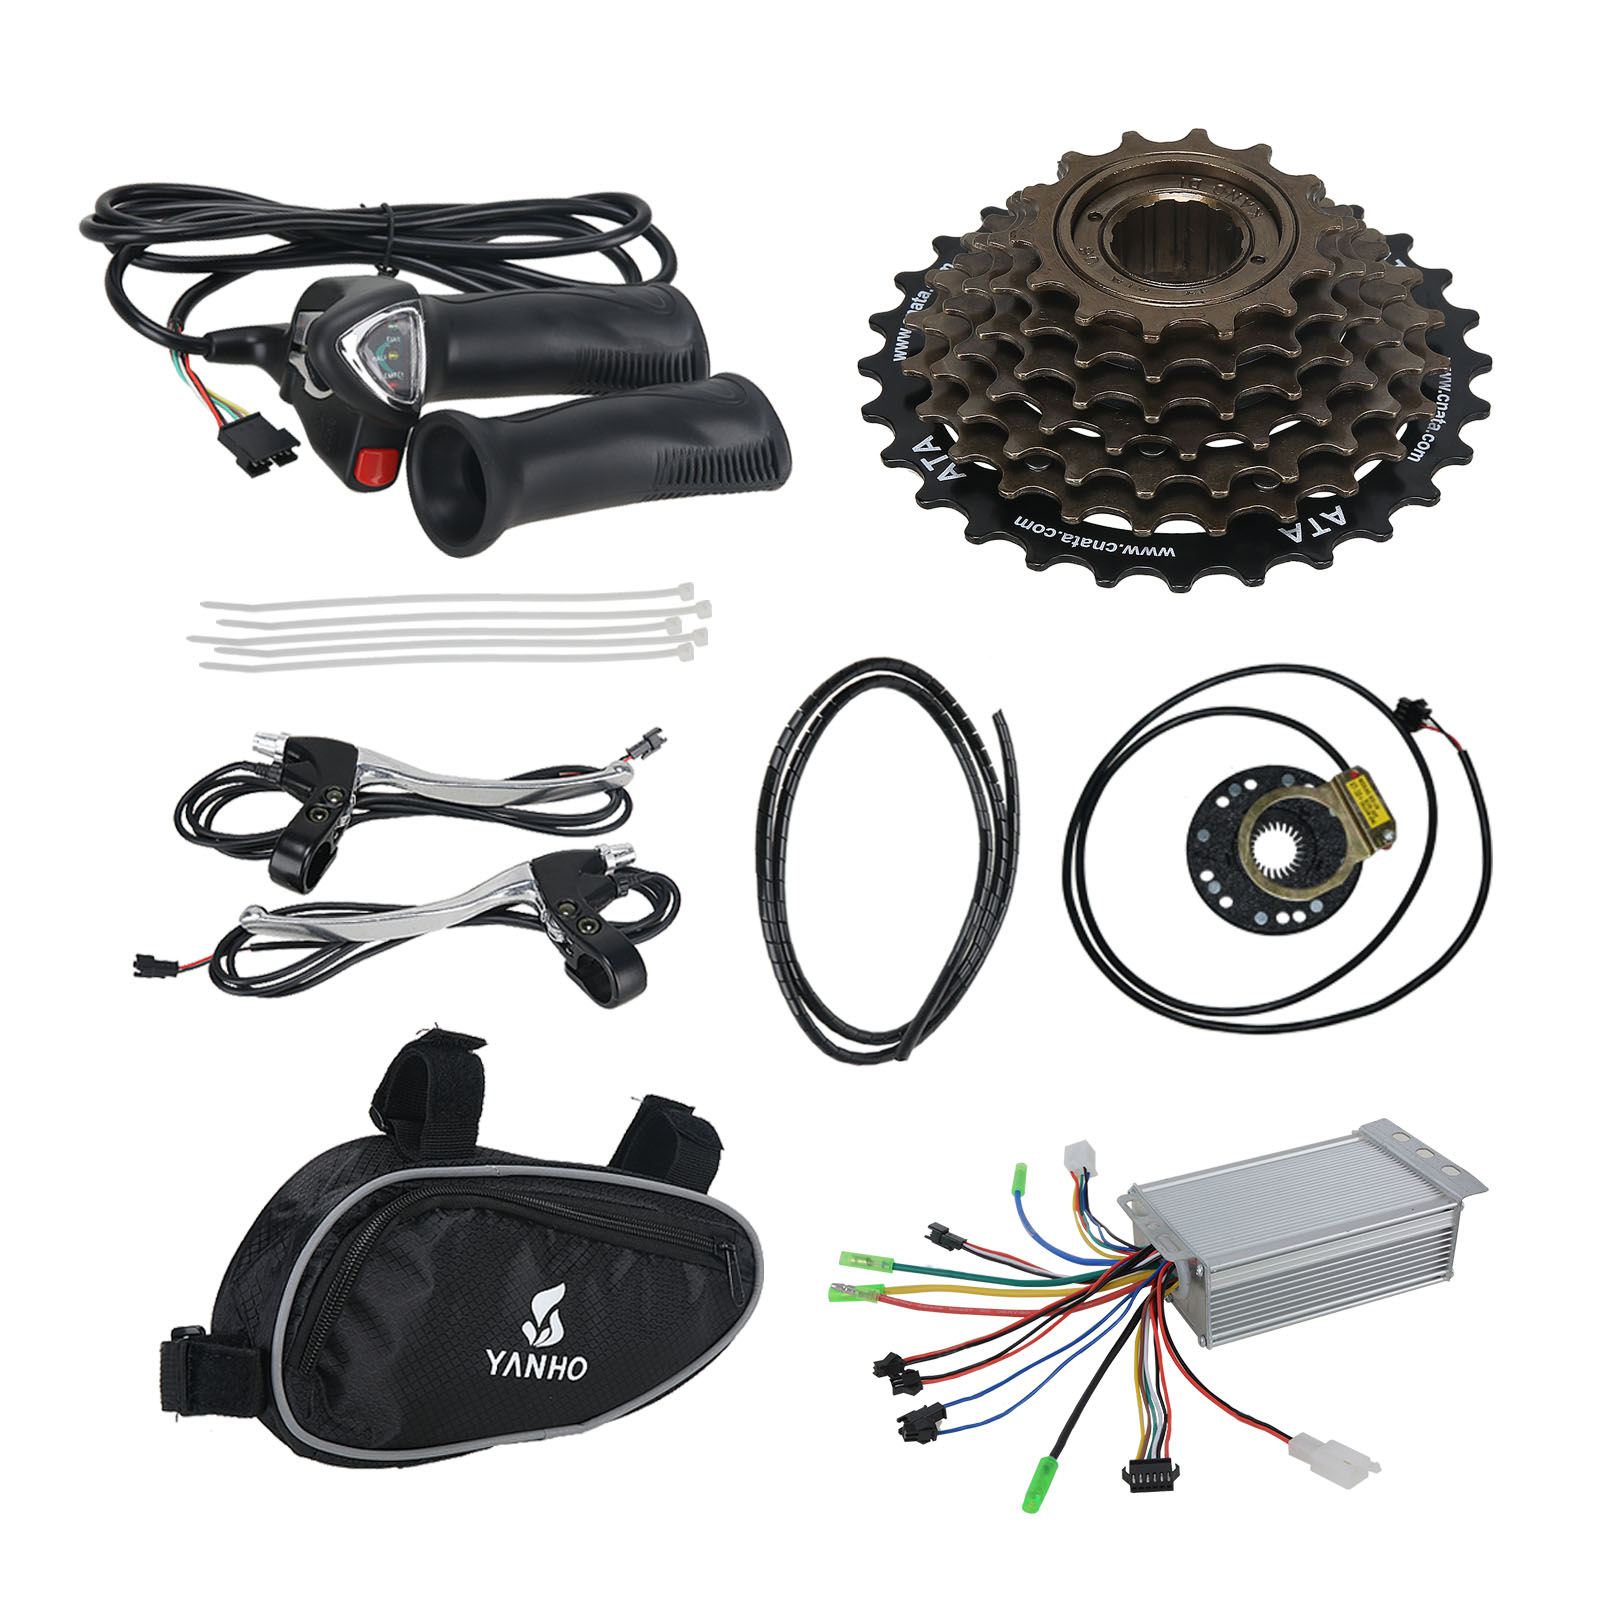 Pd750 Electric Motor Kit: 36V 500W Electric Bicycle E Bike Motor Conversion Kit Rear